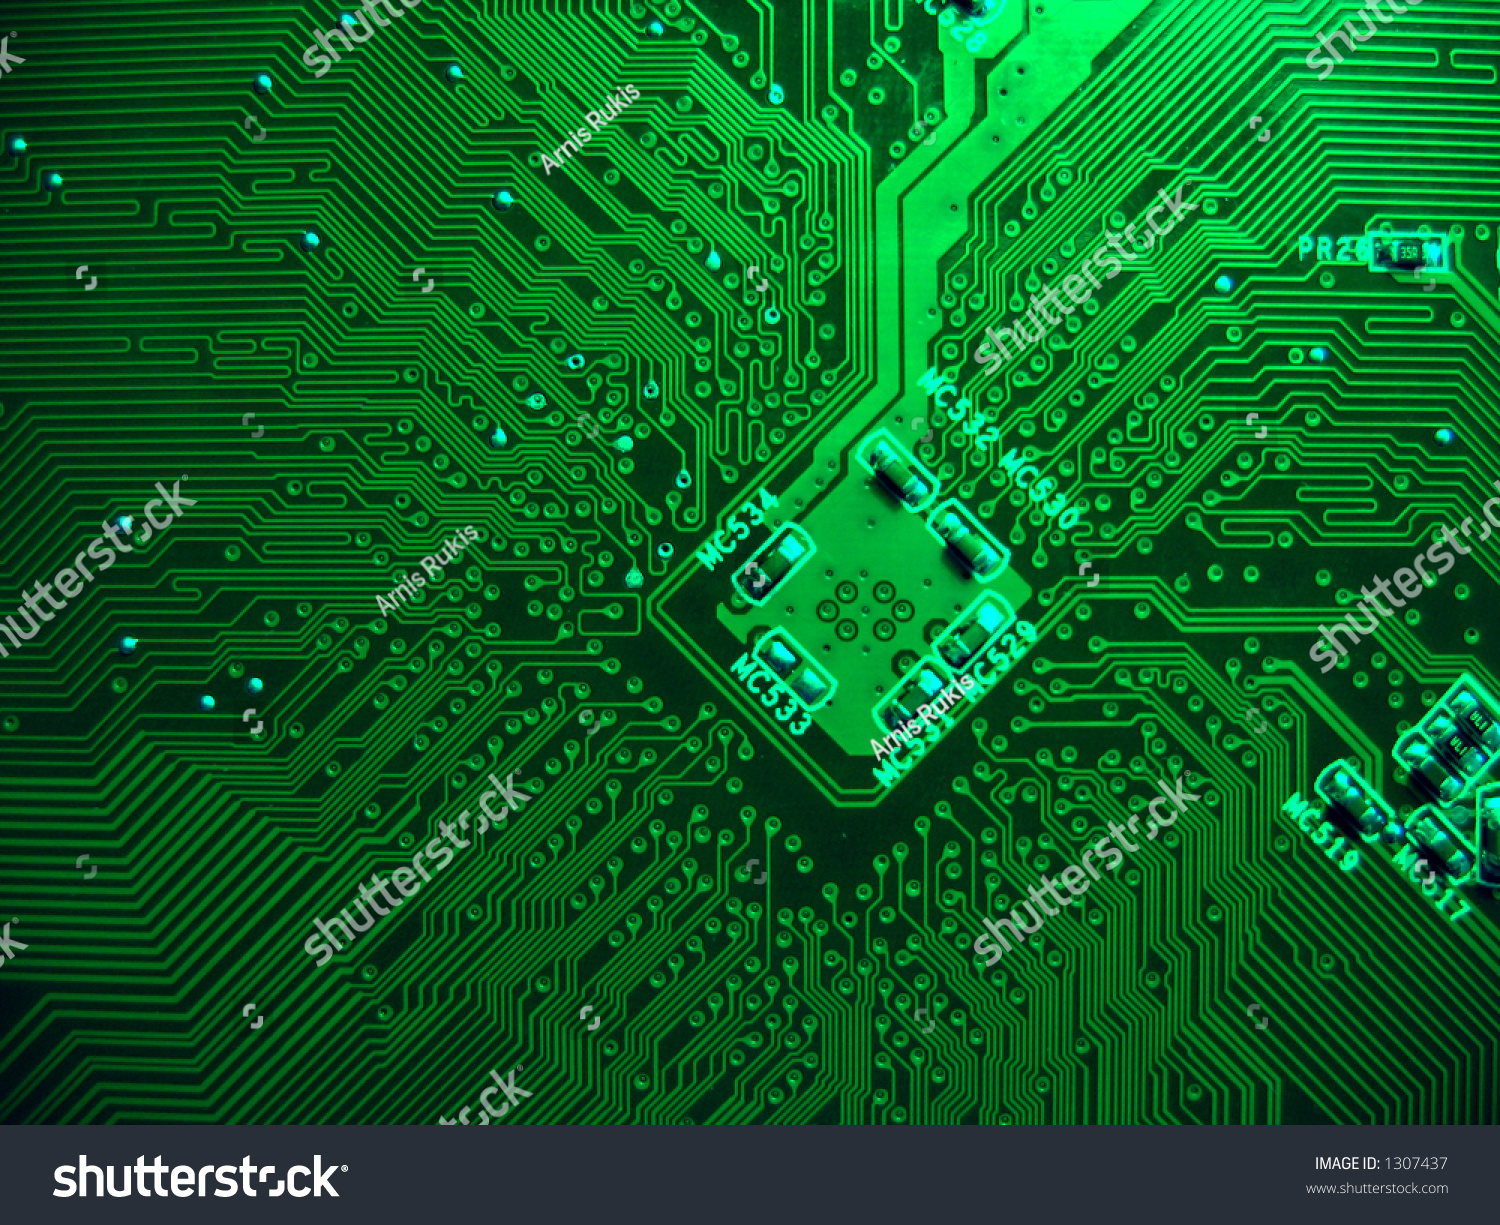 Printed Circuit Board Computer Motherboard Stock Photo Edit Now Photos Images Pictures Shutterstock